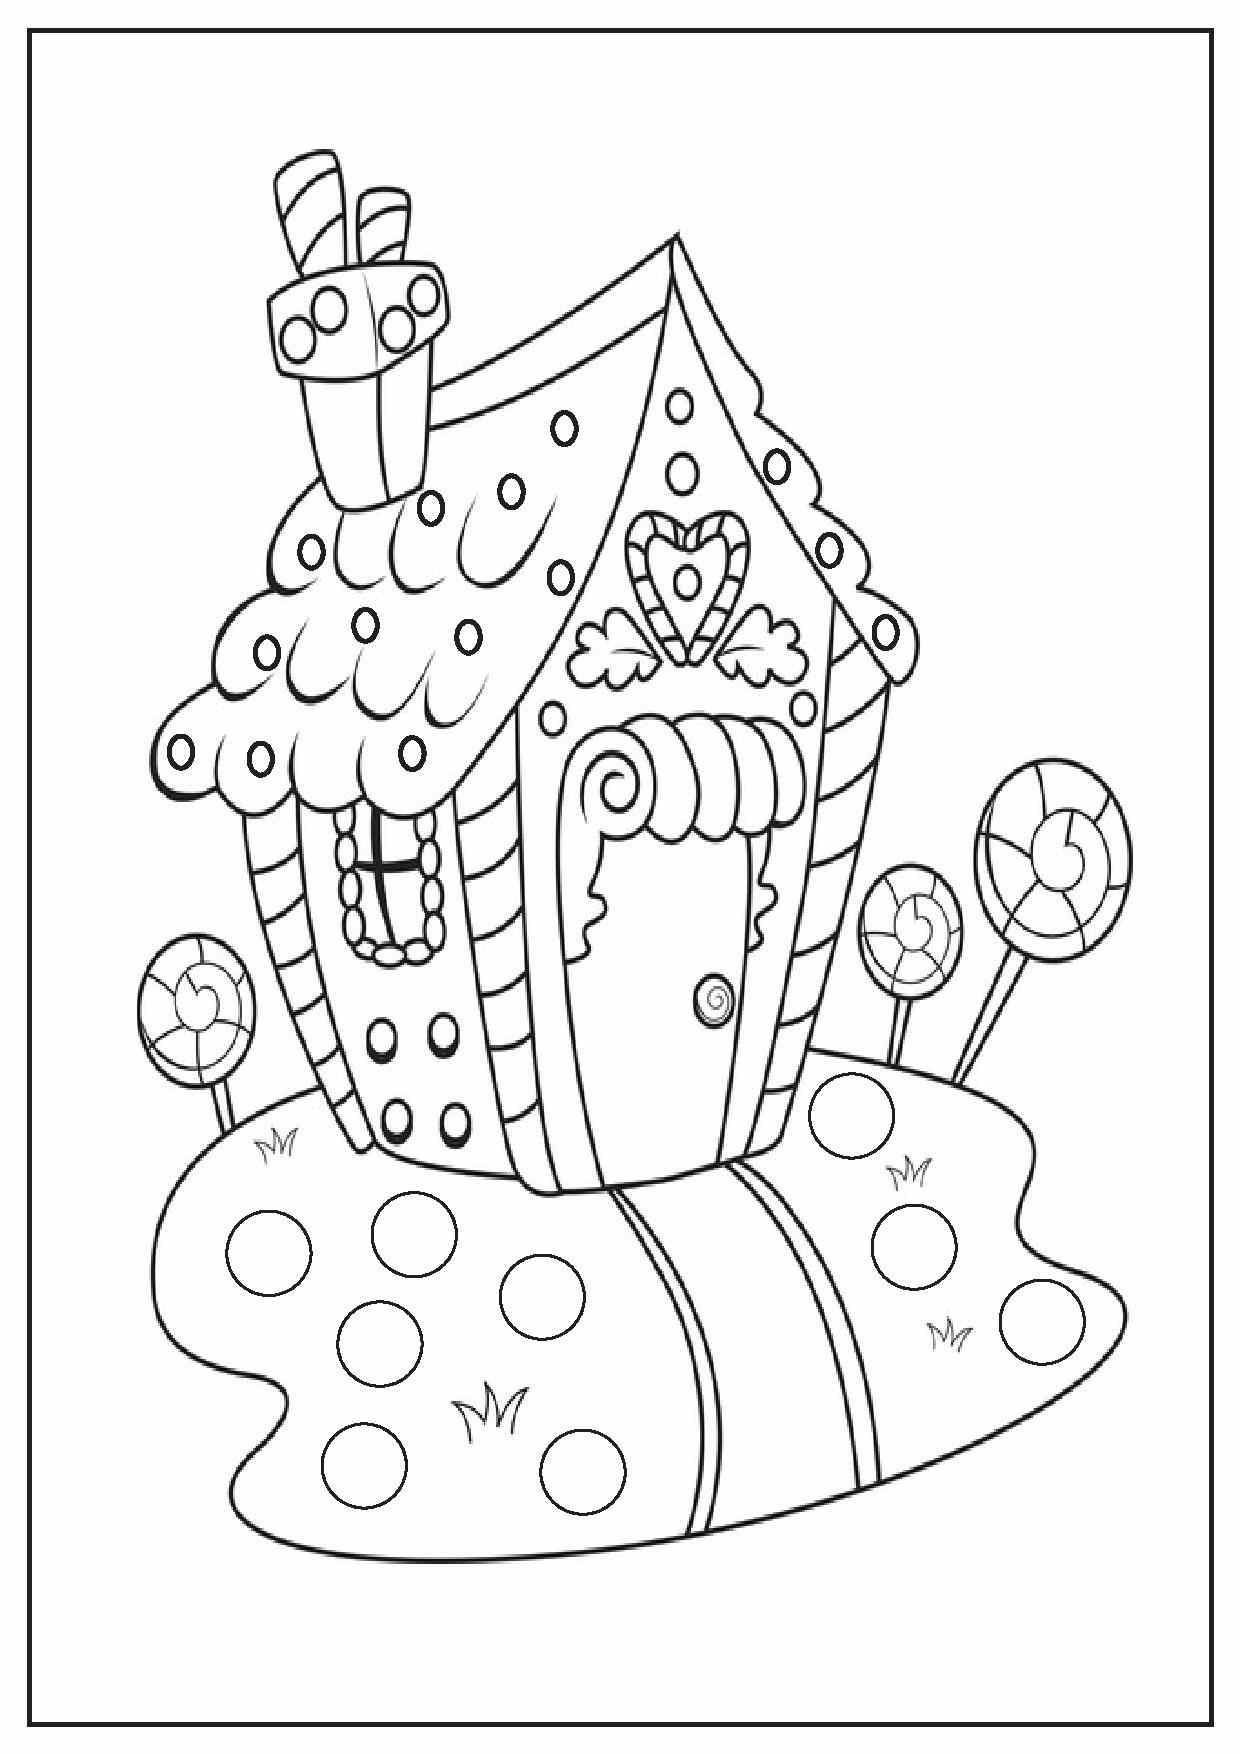 Christmas Colouring Pages That You Can Print With Coloring Printable